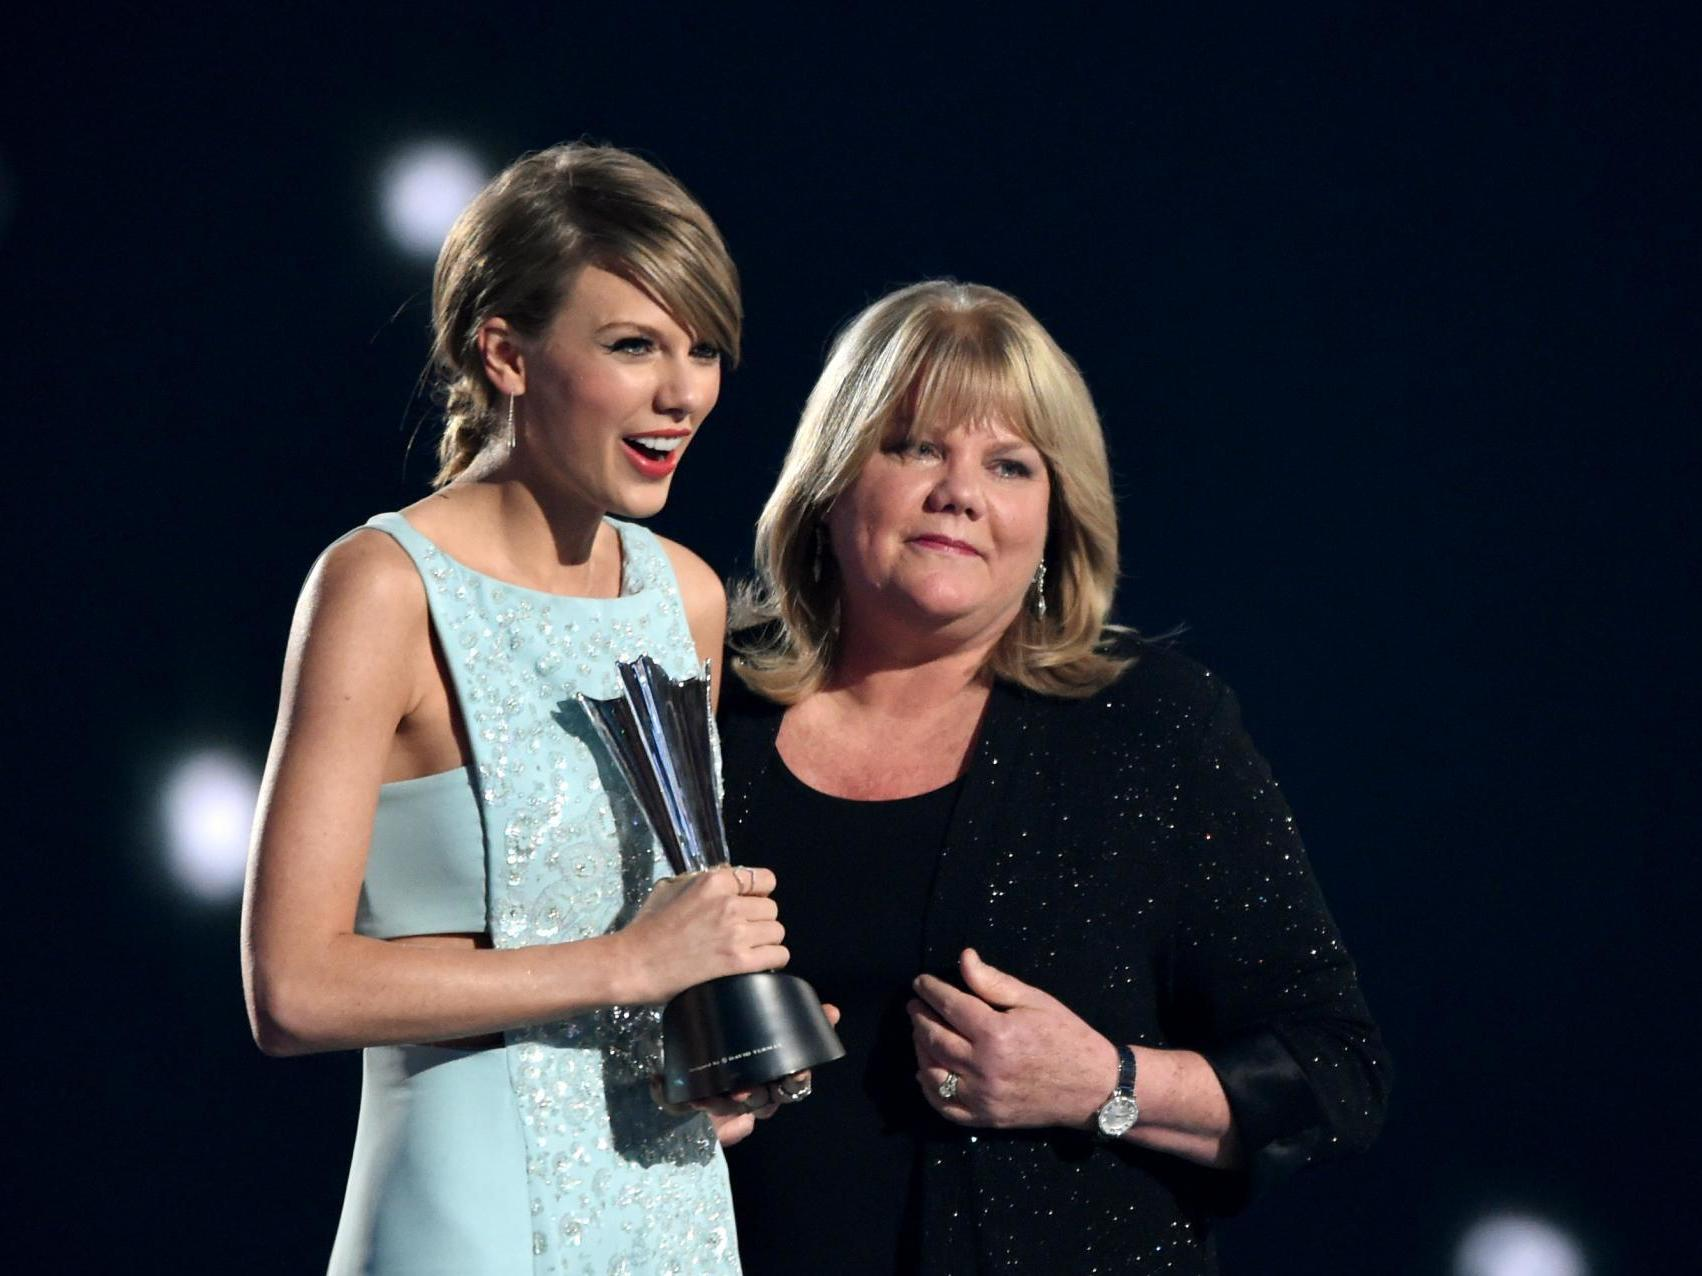 Taylor Swift Reveals Her Mother Has Been Diagnosed With A Brain Tumour The Independent The Independent